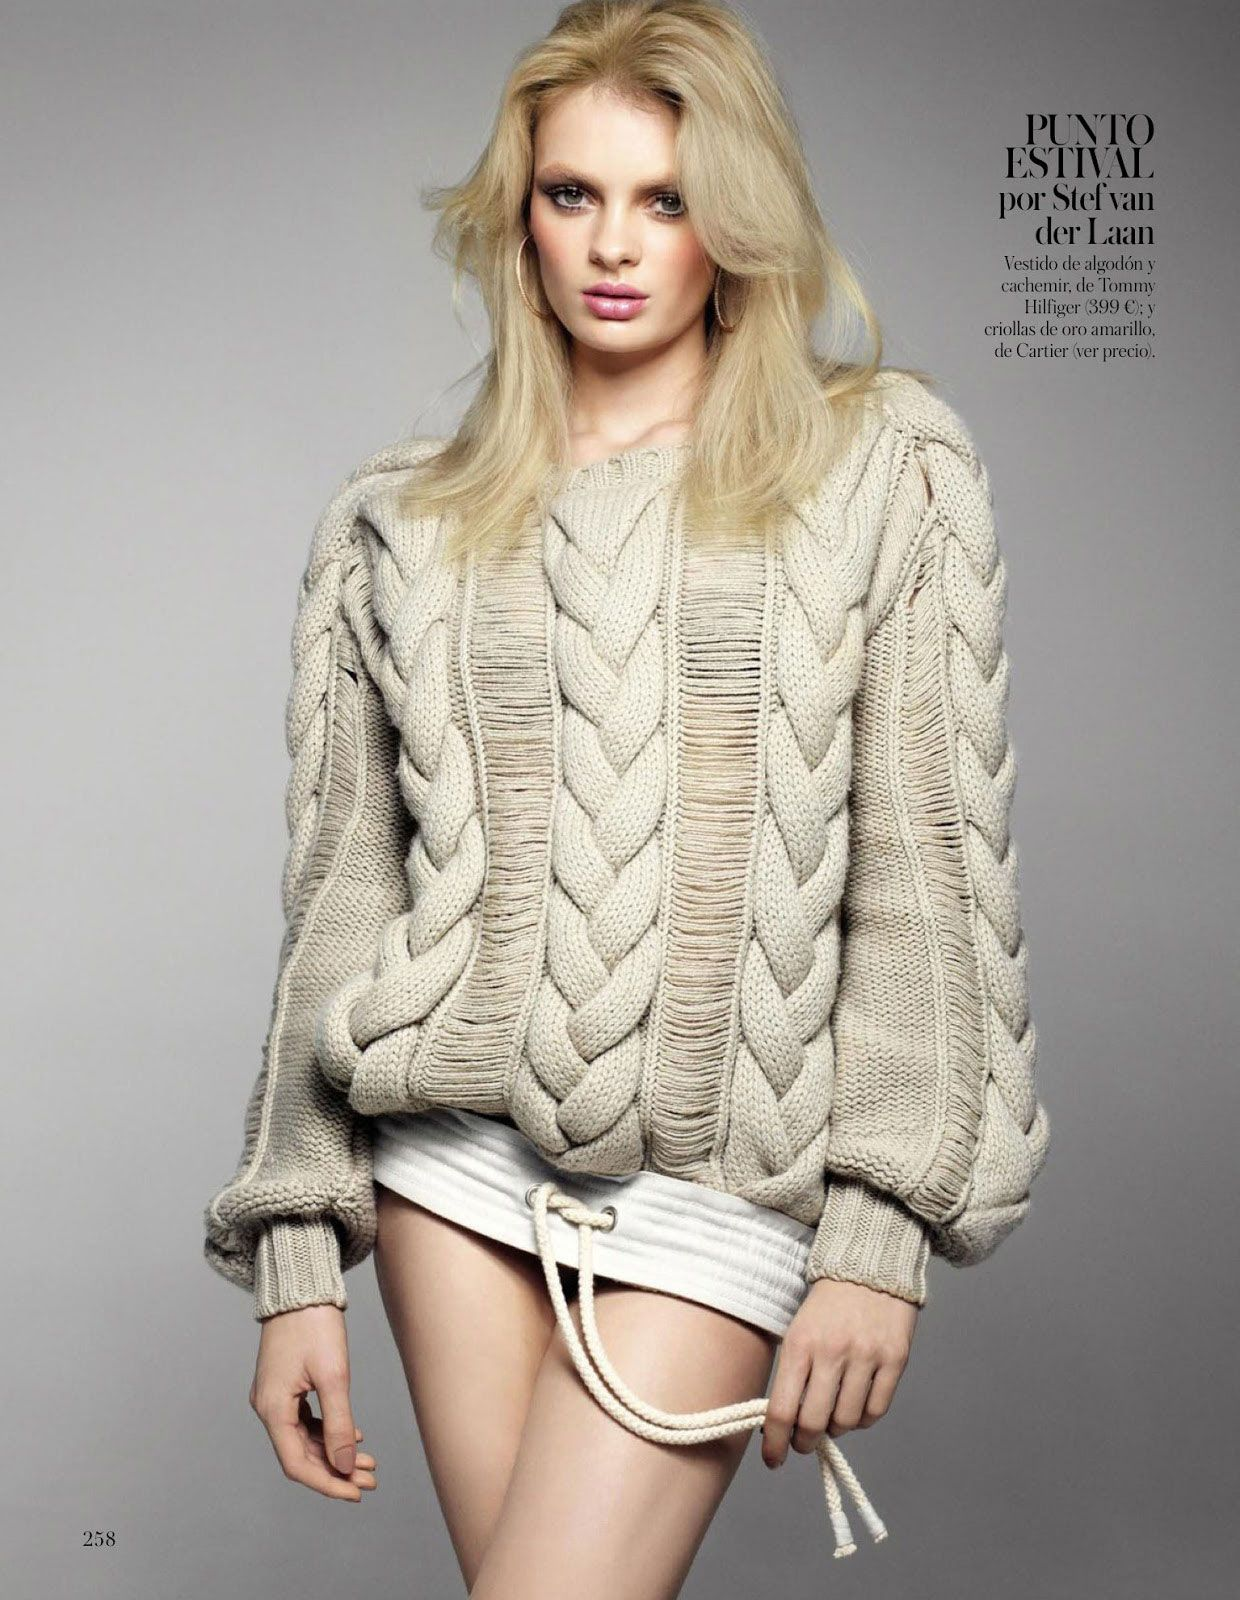 Big chunky cable knit by designer tommy hilfiger 2013 made out of big chunky cable knit by designer tommy hilfiger 2013 made out of cotton and cashmere bankloansurffo Choice Image